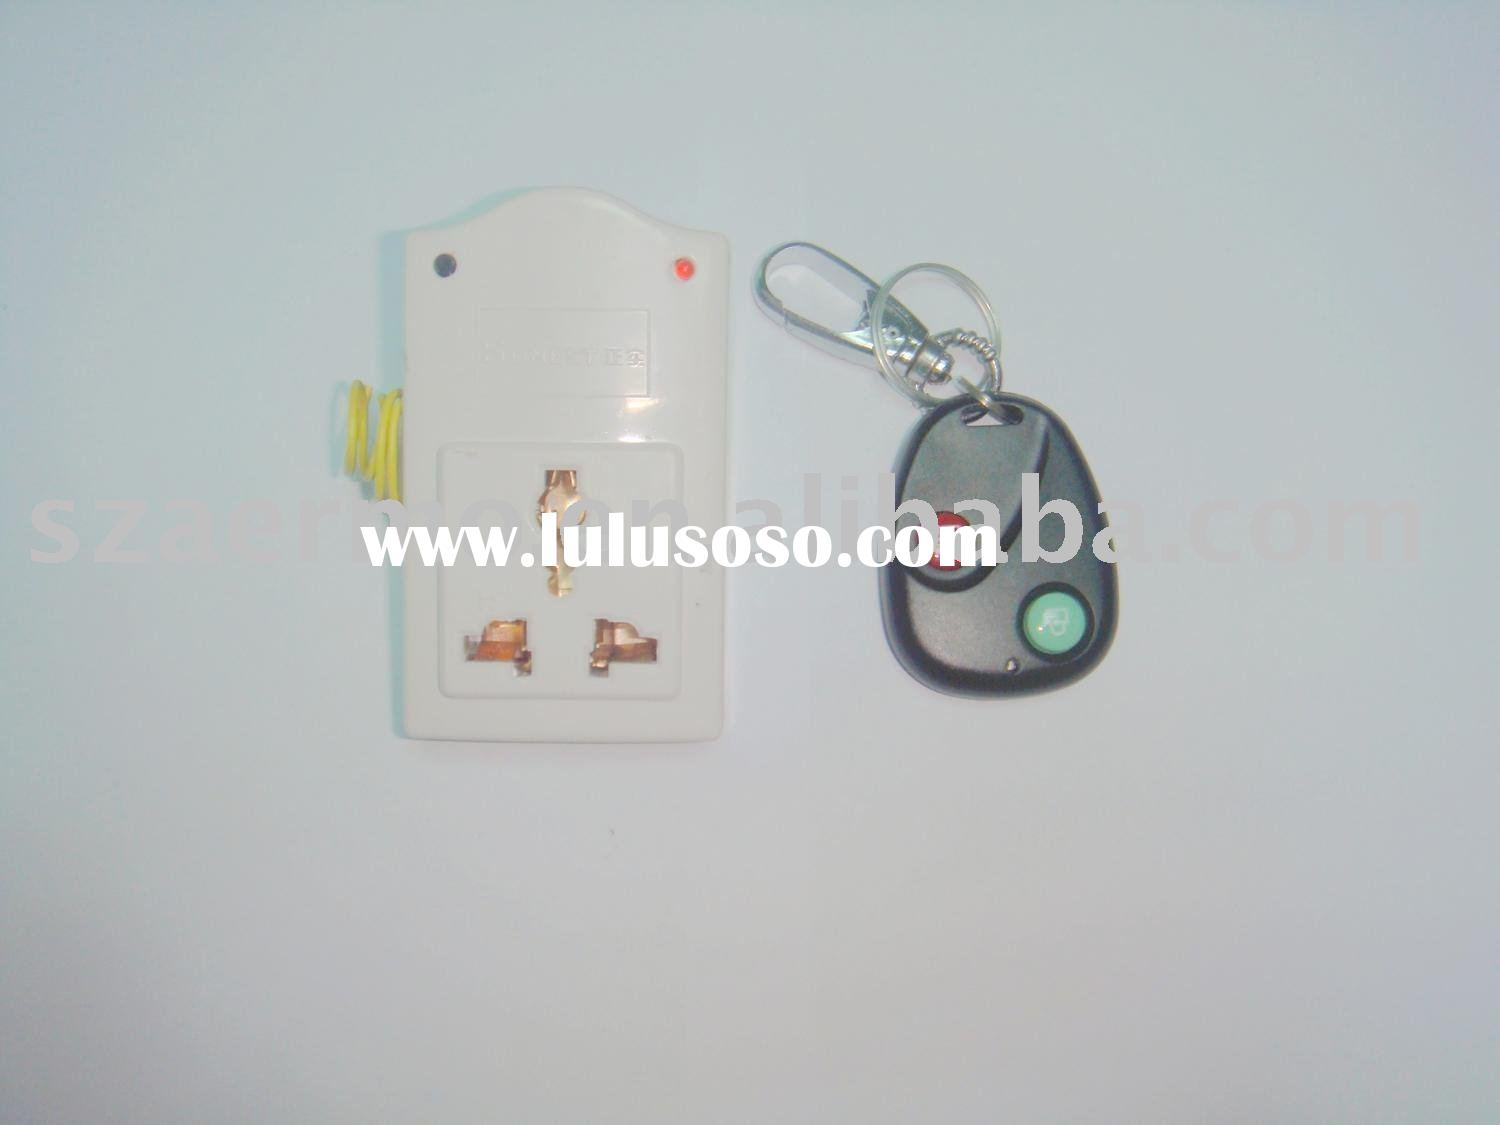 Remote control switch,remote control switch,remote control socket,remote plug